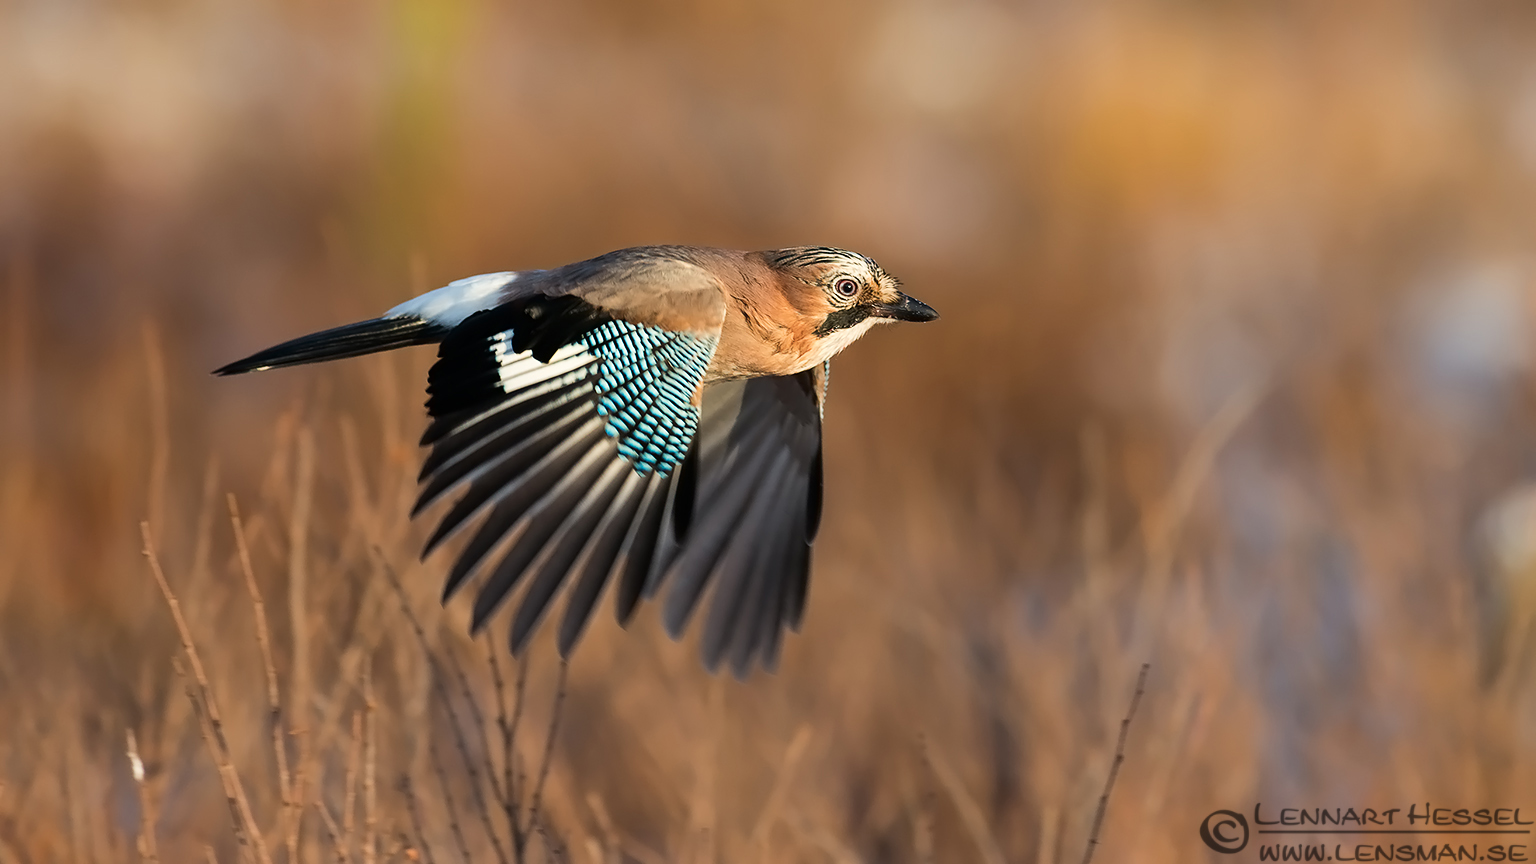 Eurasian Jay, photo from Kalvträsk. National Geographic wild bird